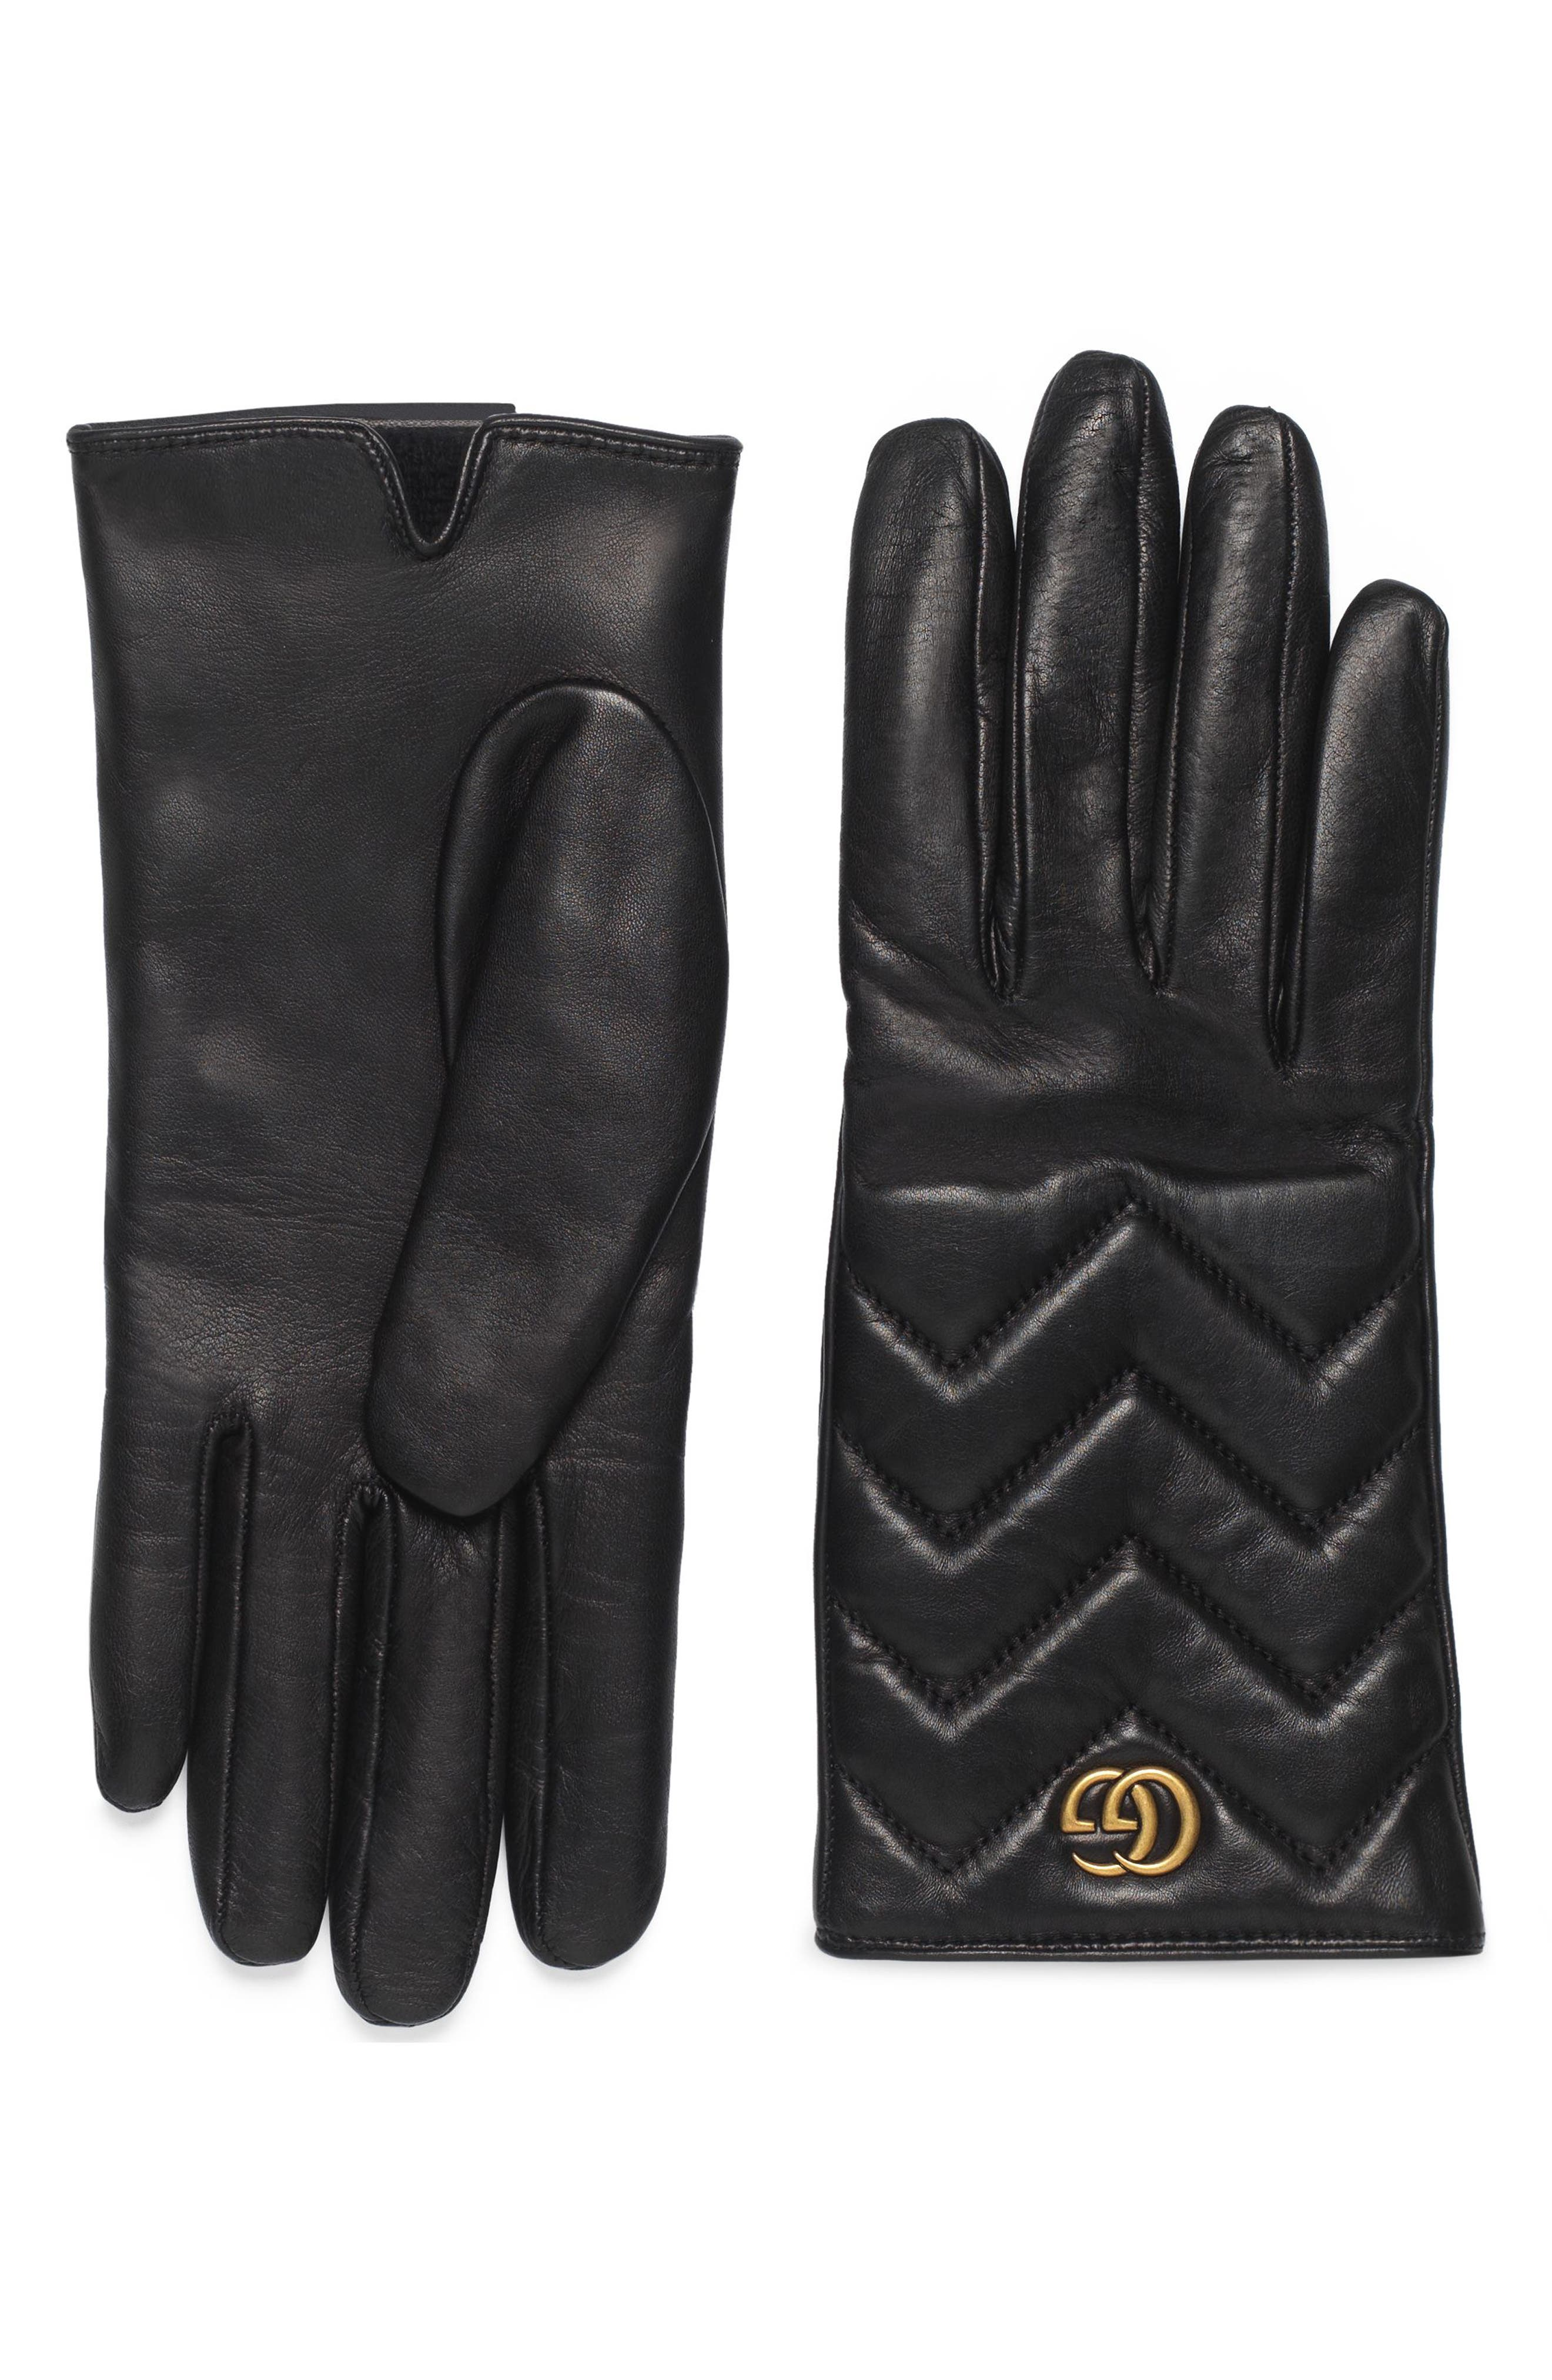 Gucci Gg Marmont Cashmere Lined Leather Gloves, Black